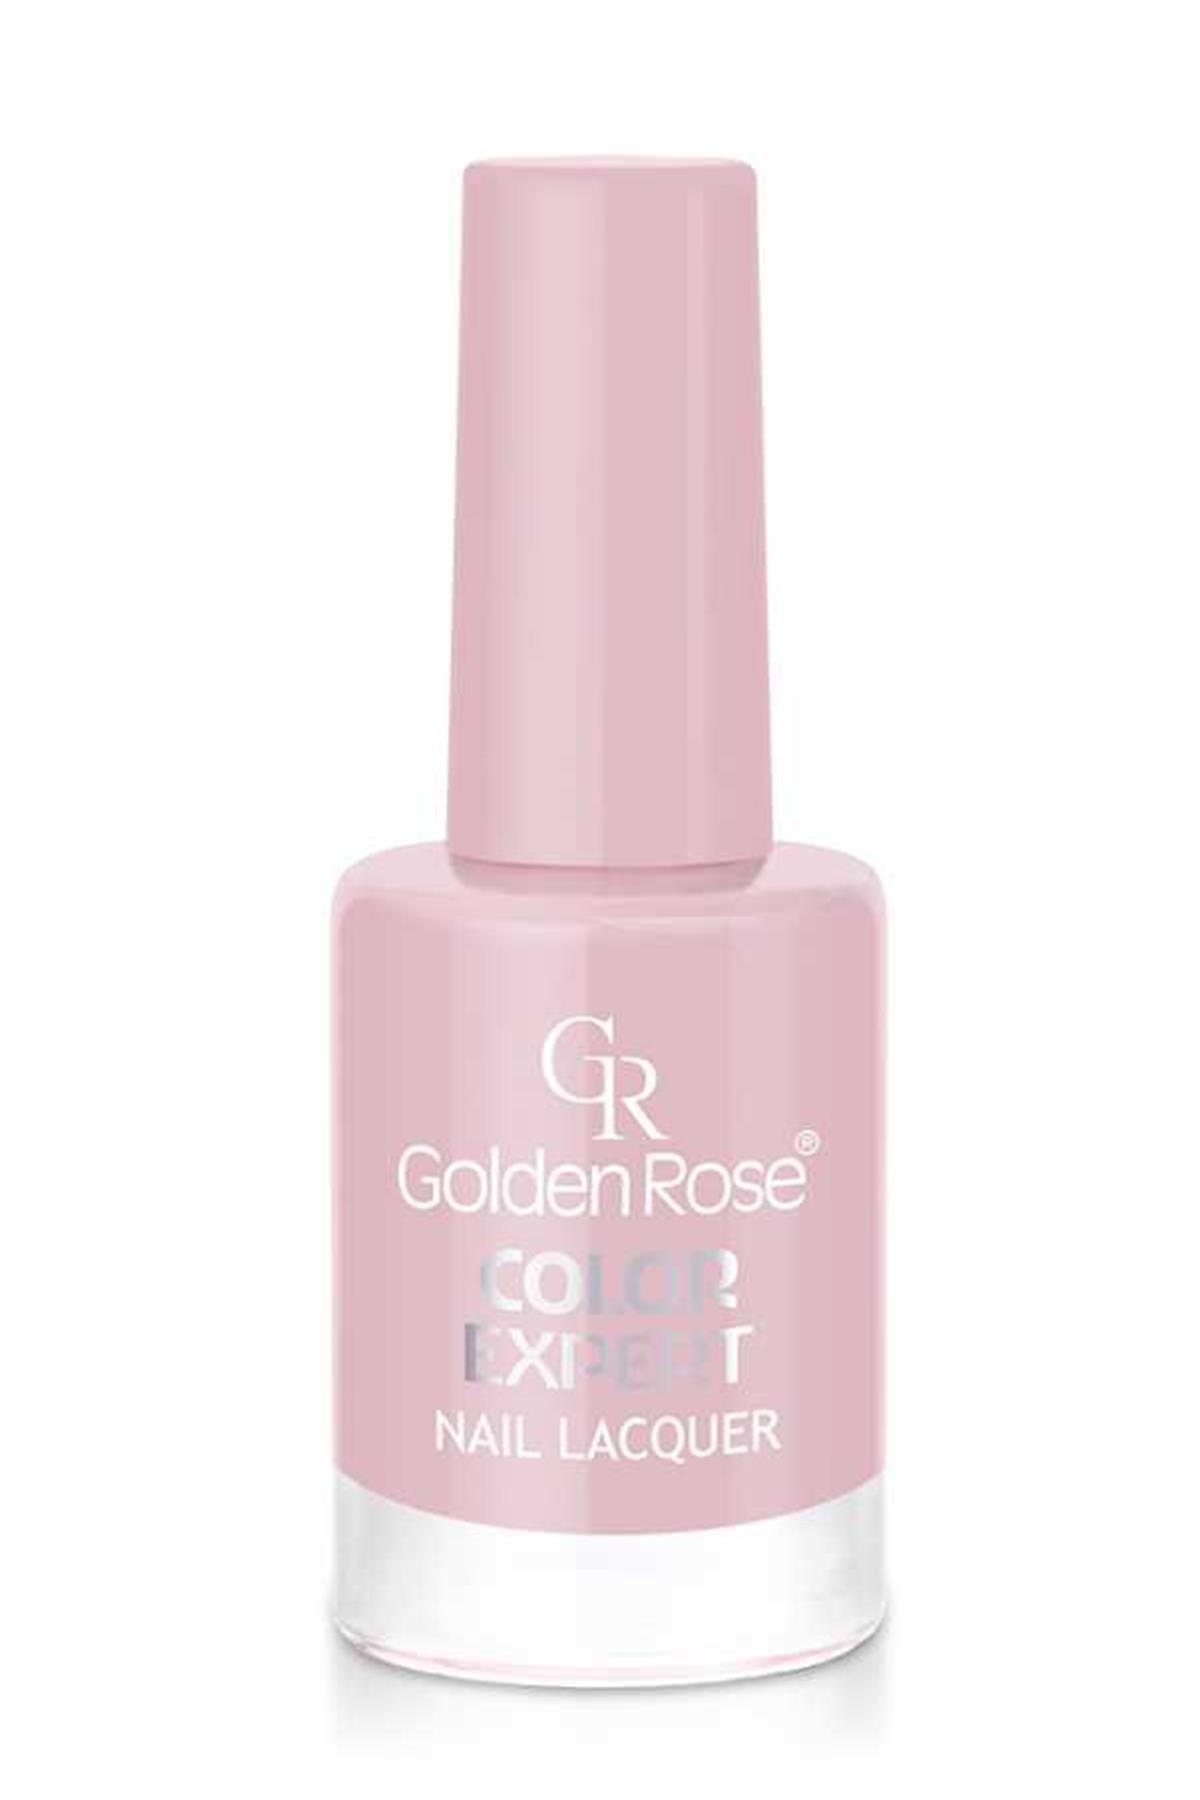 Golden Rose Oje - Color Expert Nail Lacquer No: 08 1